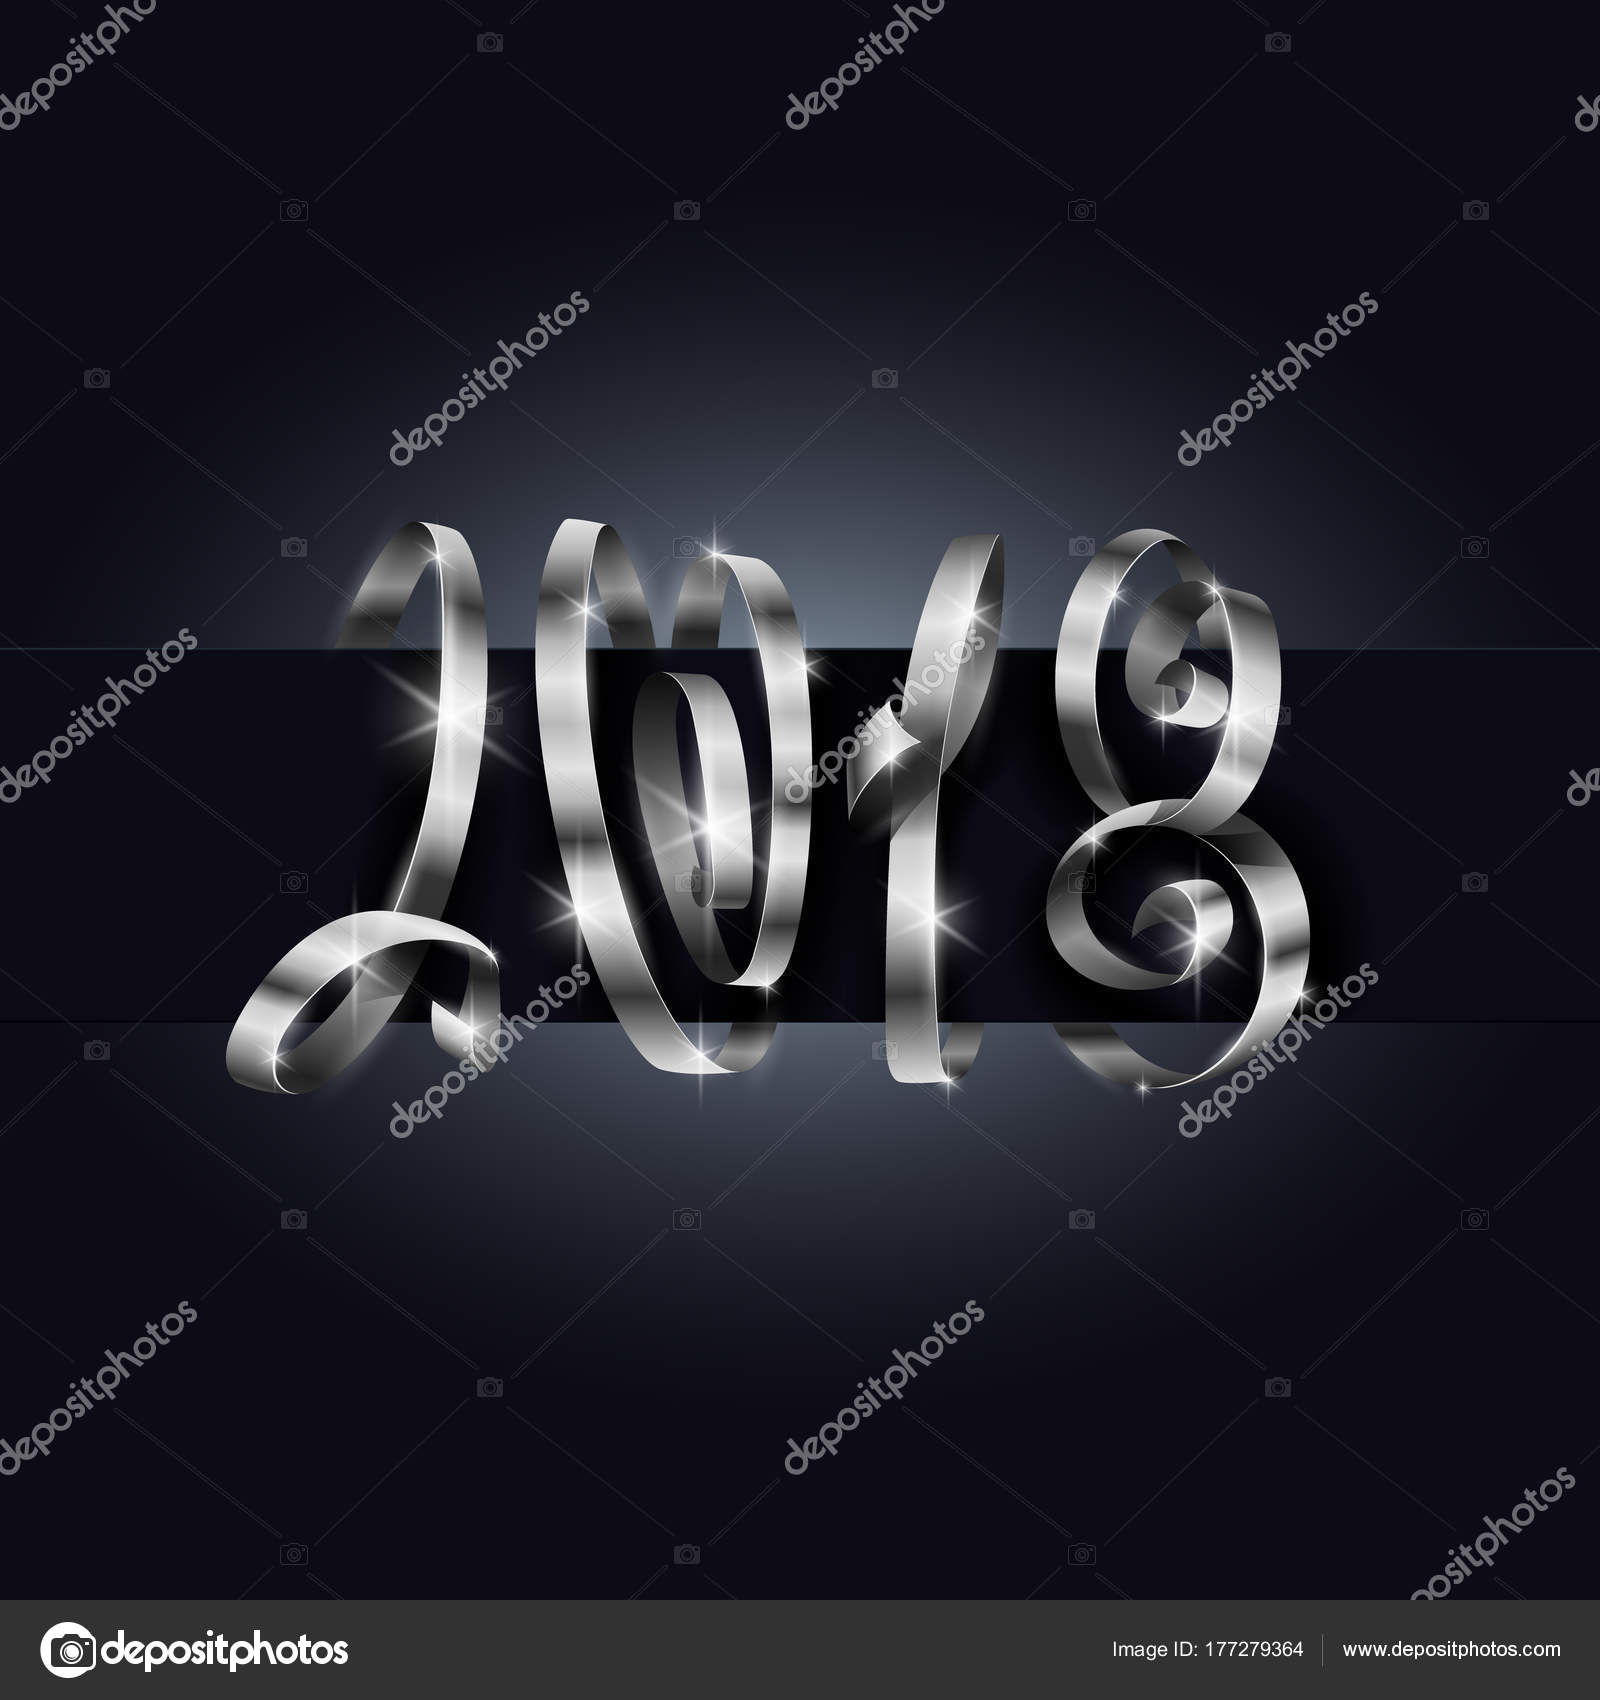 vector 2018 new year background 2018 lettering typography using silver gift ribbon or serpentine curls